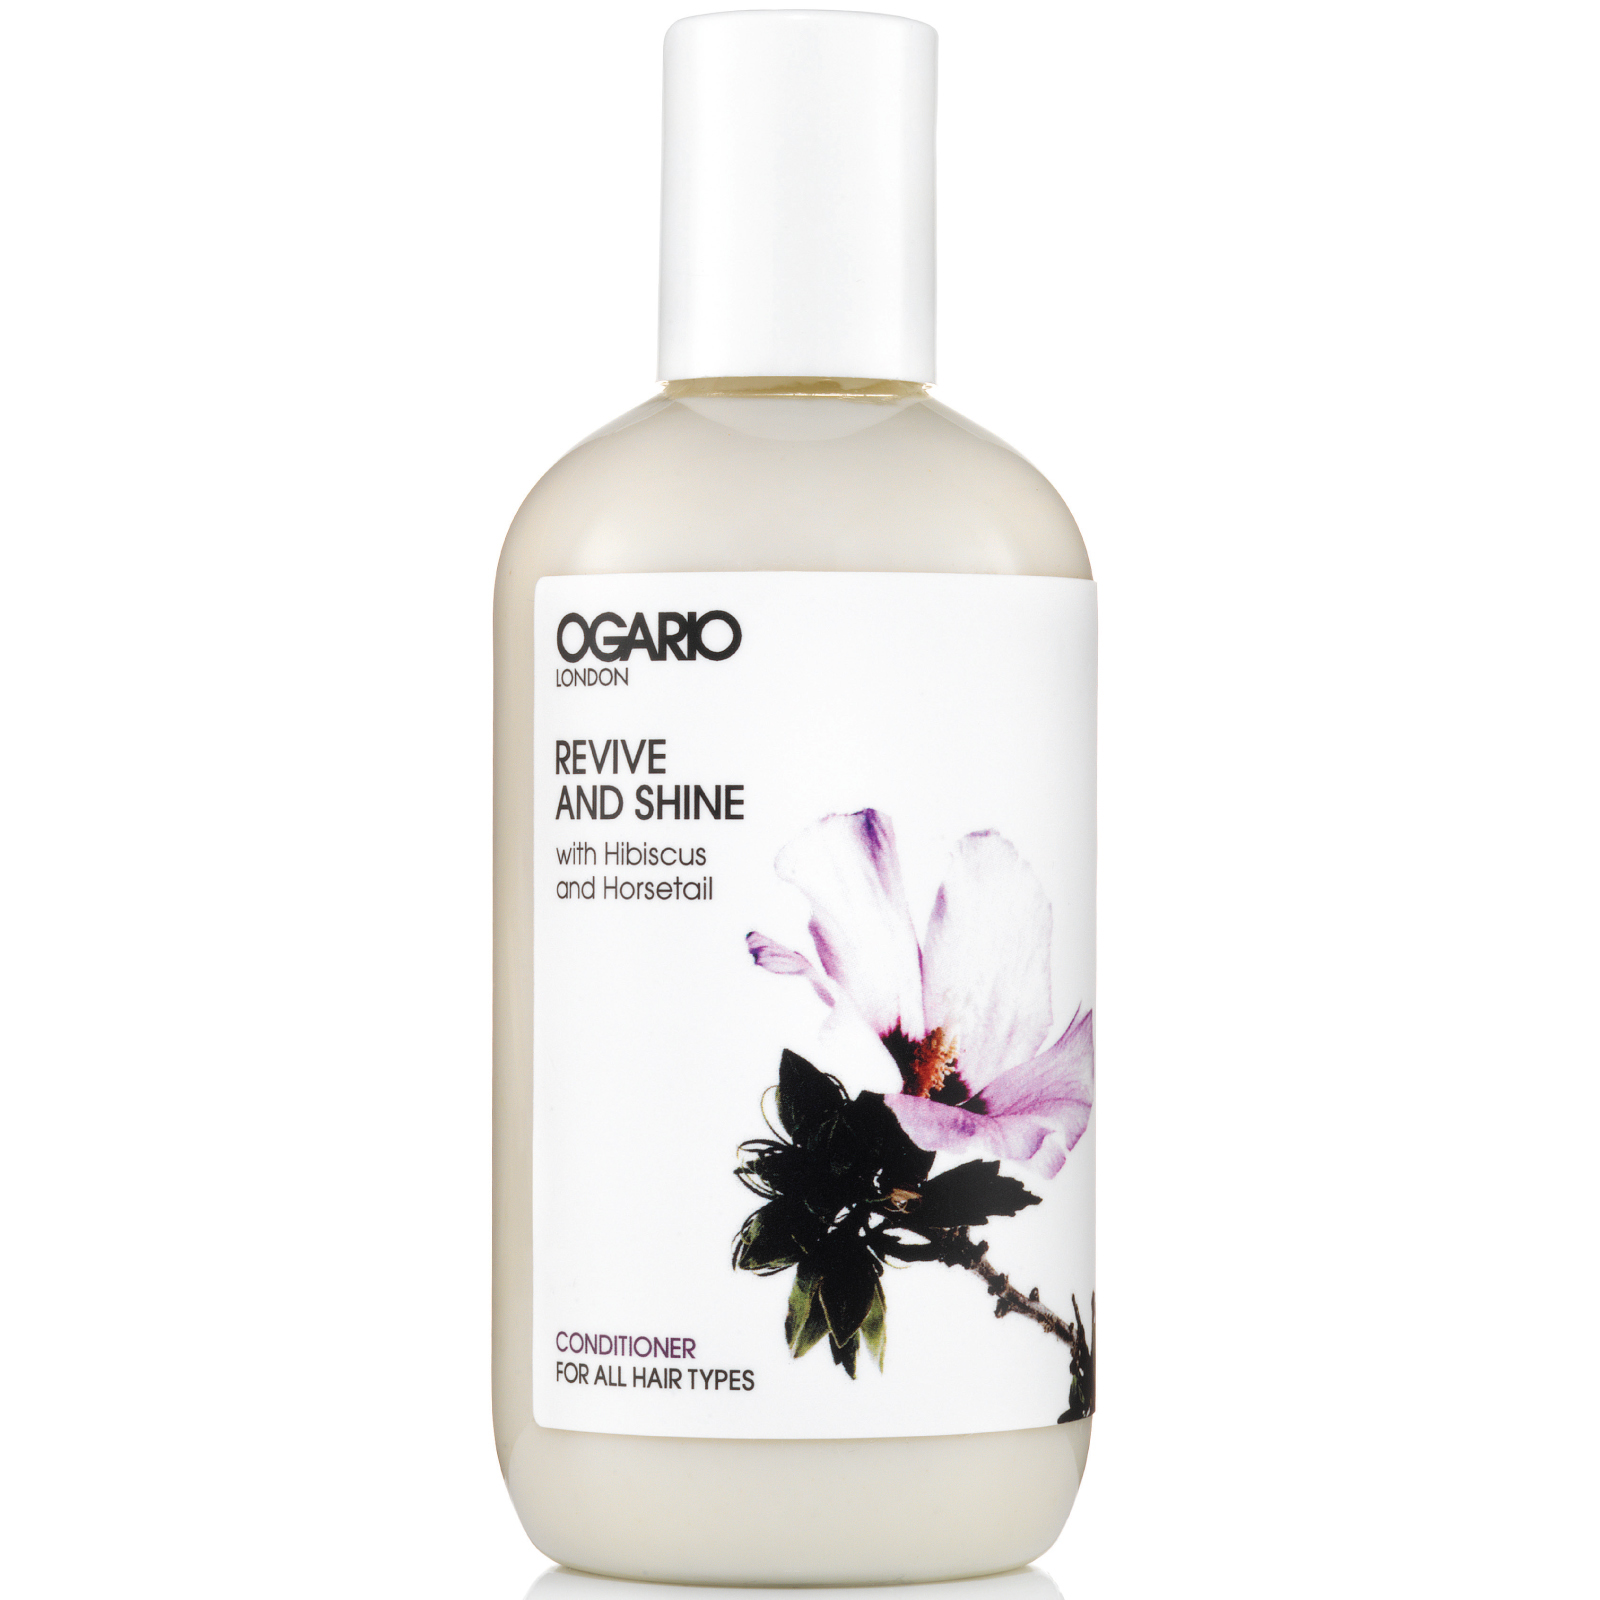 OGARIO Revive and Shine Conditioner for all hair types; prep fine hair for styling, detangler